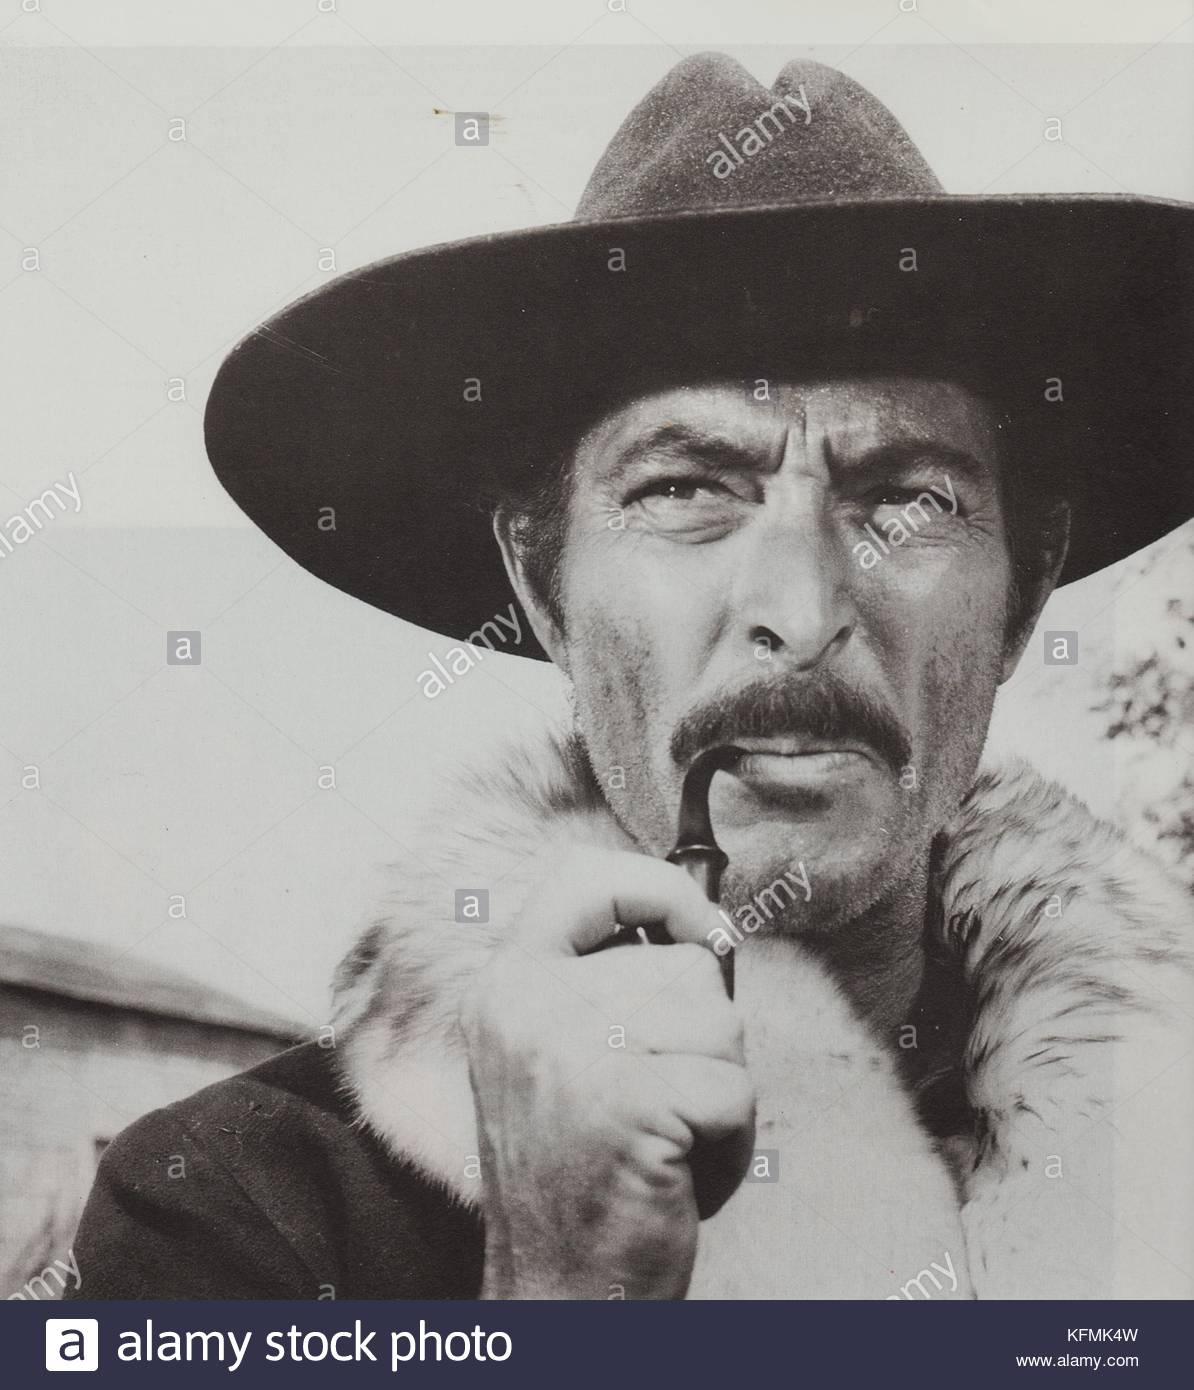 Lee Van Cleef Good Stock Photos \u0026 Lee Van Cleef Good Stock Images ...